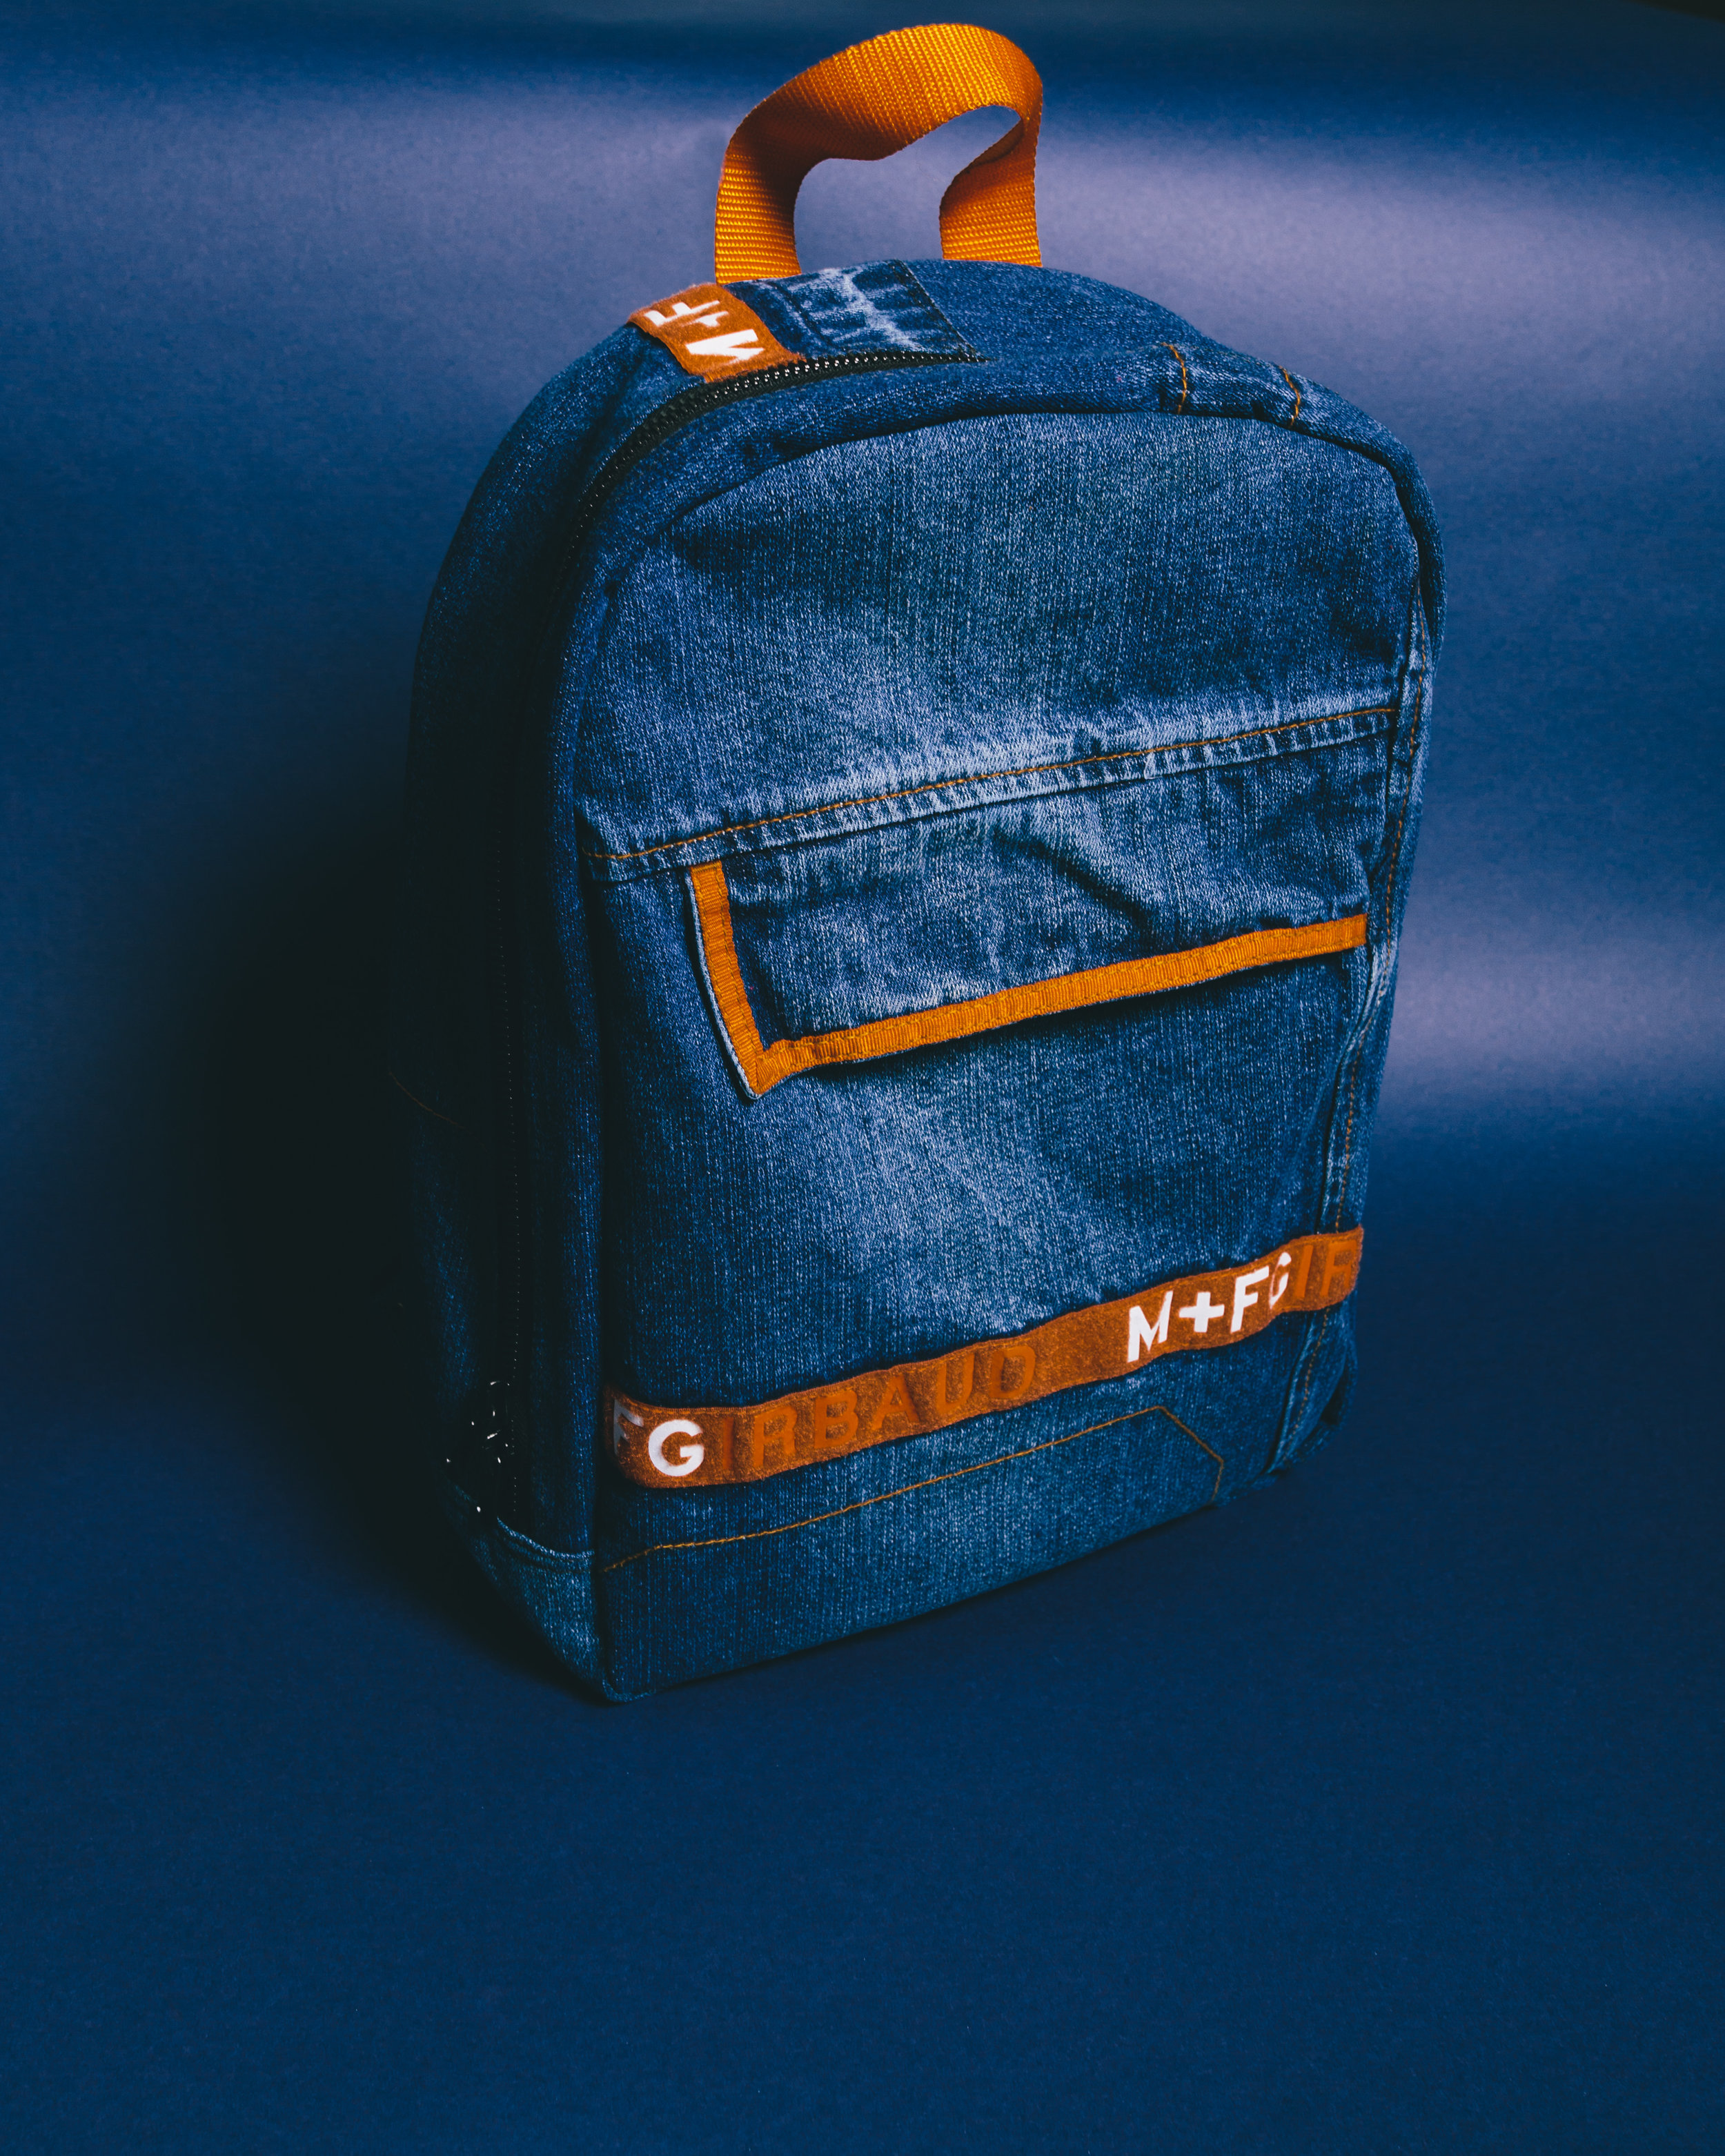 Girbaud Rework Bag - Made from a pair of Girbaud Jeans, laptop space, foam back, Lampo Italian zippers & more.